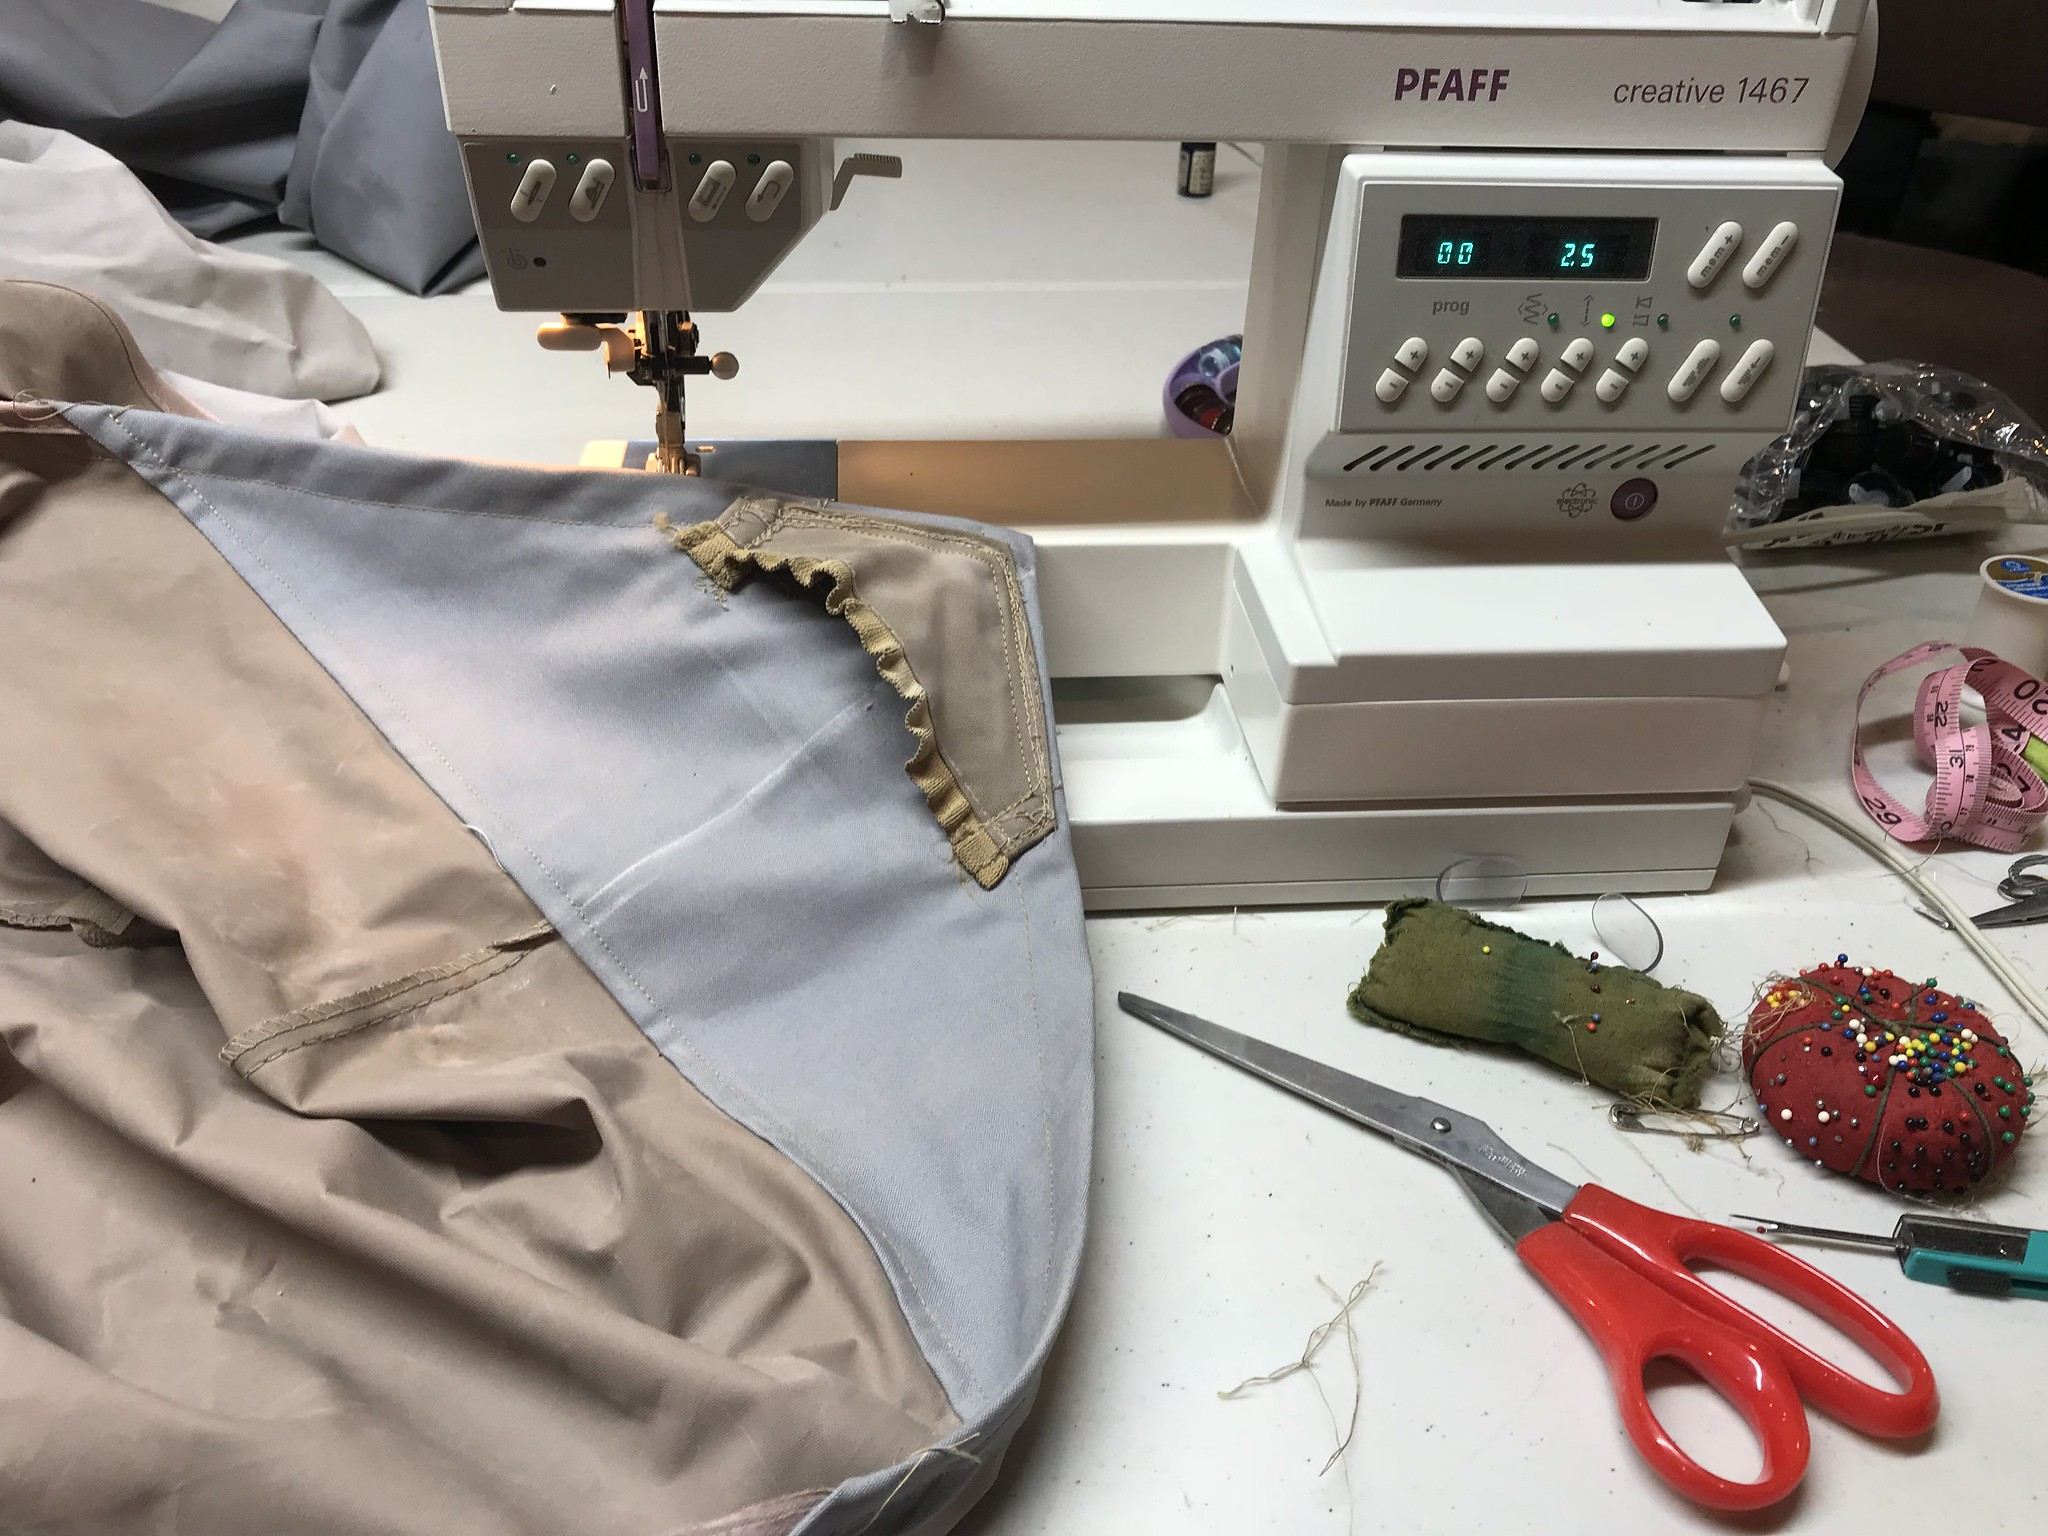 Sewing on a pocket to the canopy